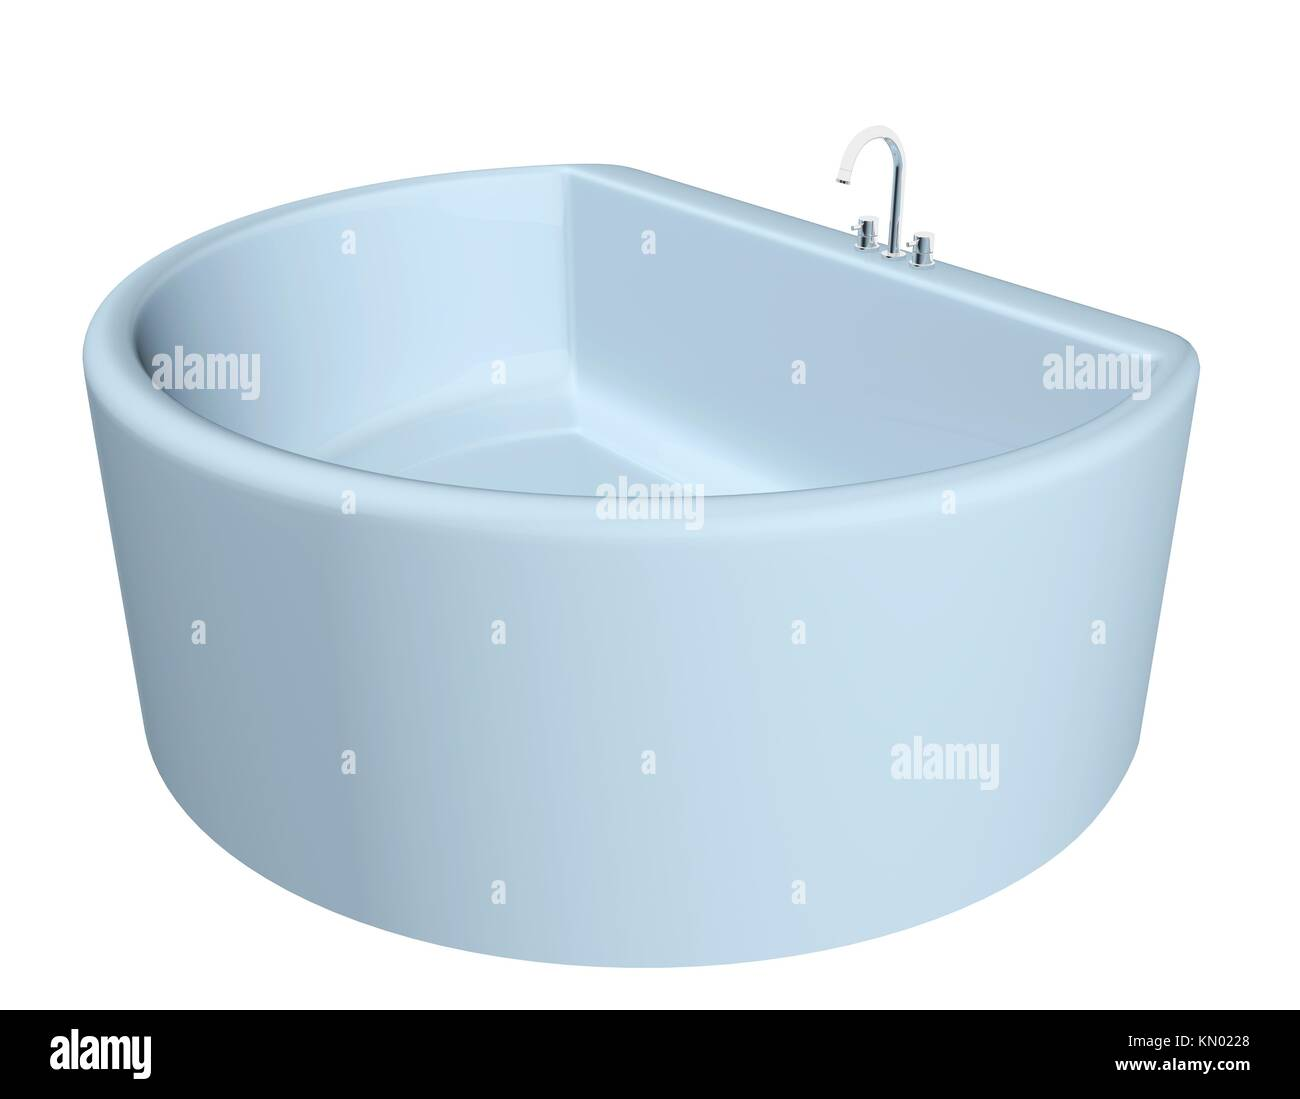 White semi-circular modern bathtub with stainless steel fixtures ...